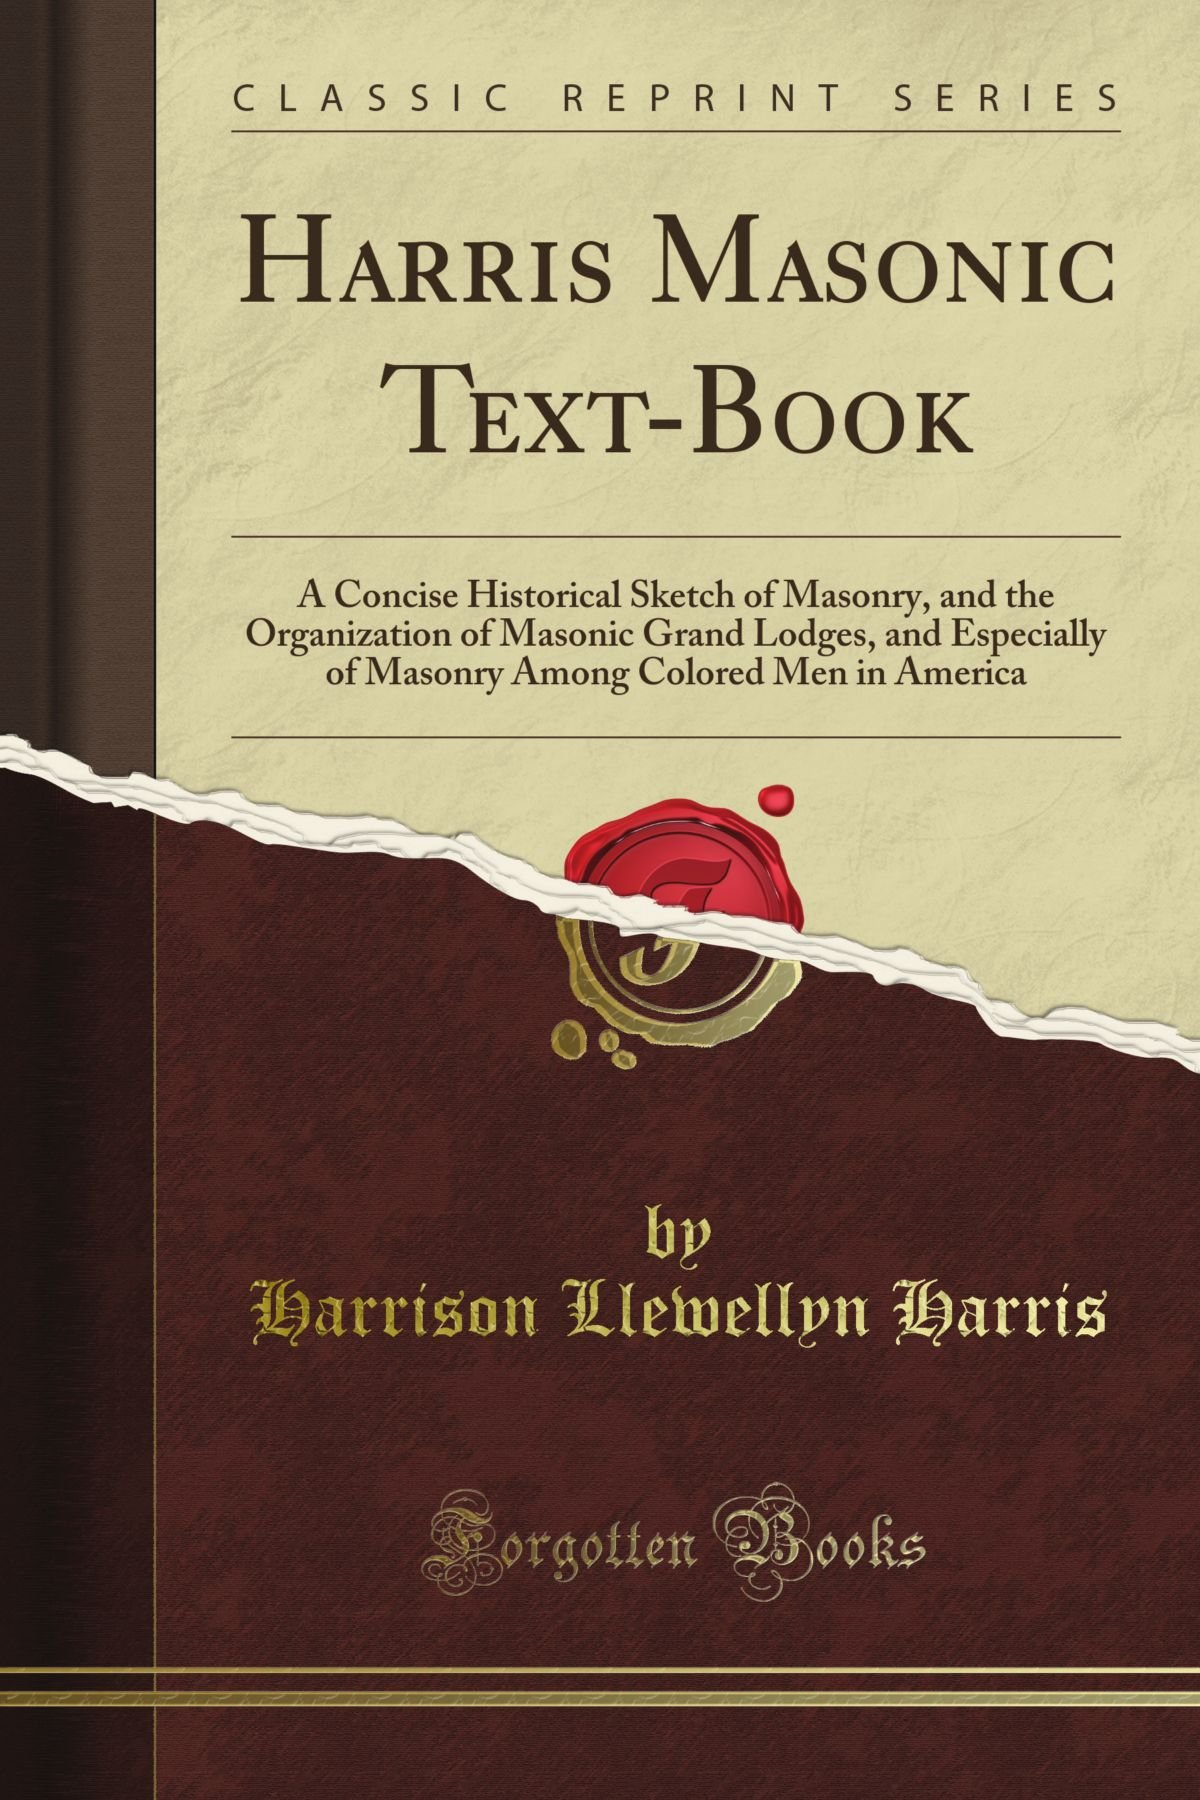 Harris Masonic Text-Book: A Concise Historical Sketch of Masonry, and the Organization of Masonic Grand Lodges, and Especially of Masonry Among Colored Men in America (Classic Reprint) pdf